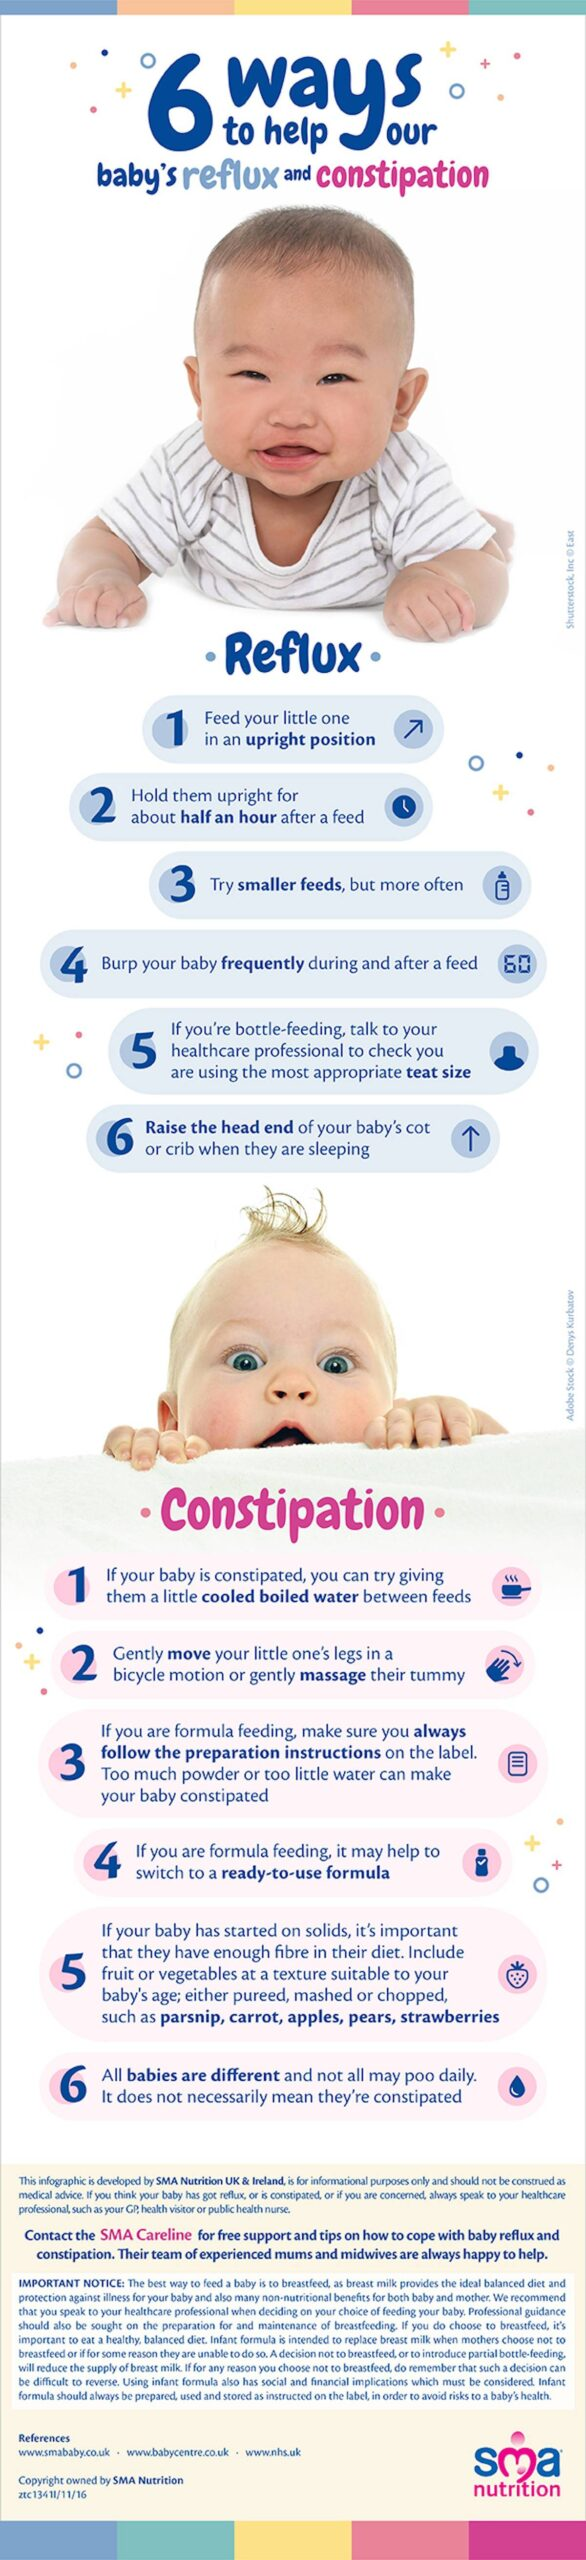 Guide to dealing with baby feeding issues reflux and constipation